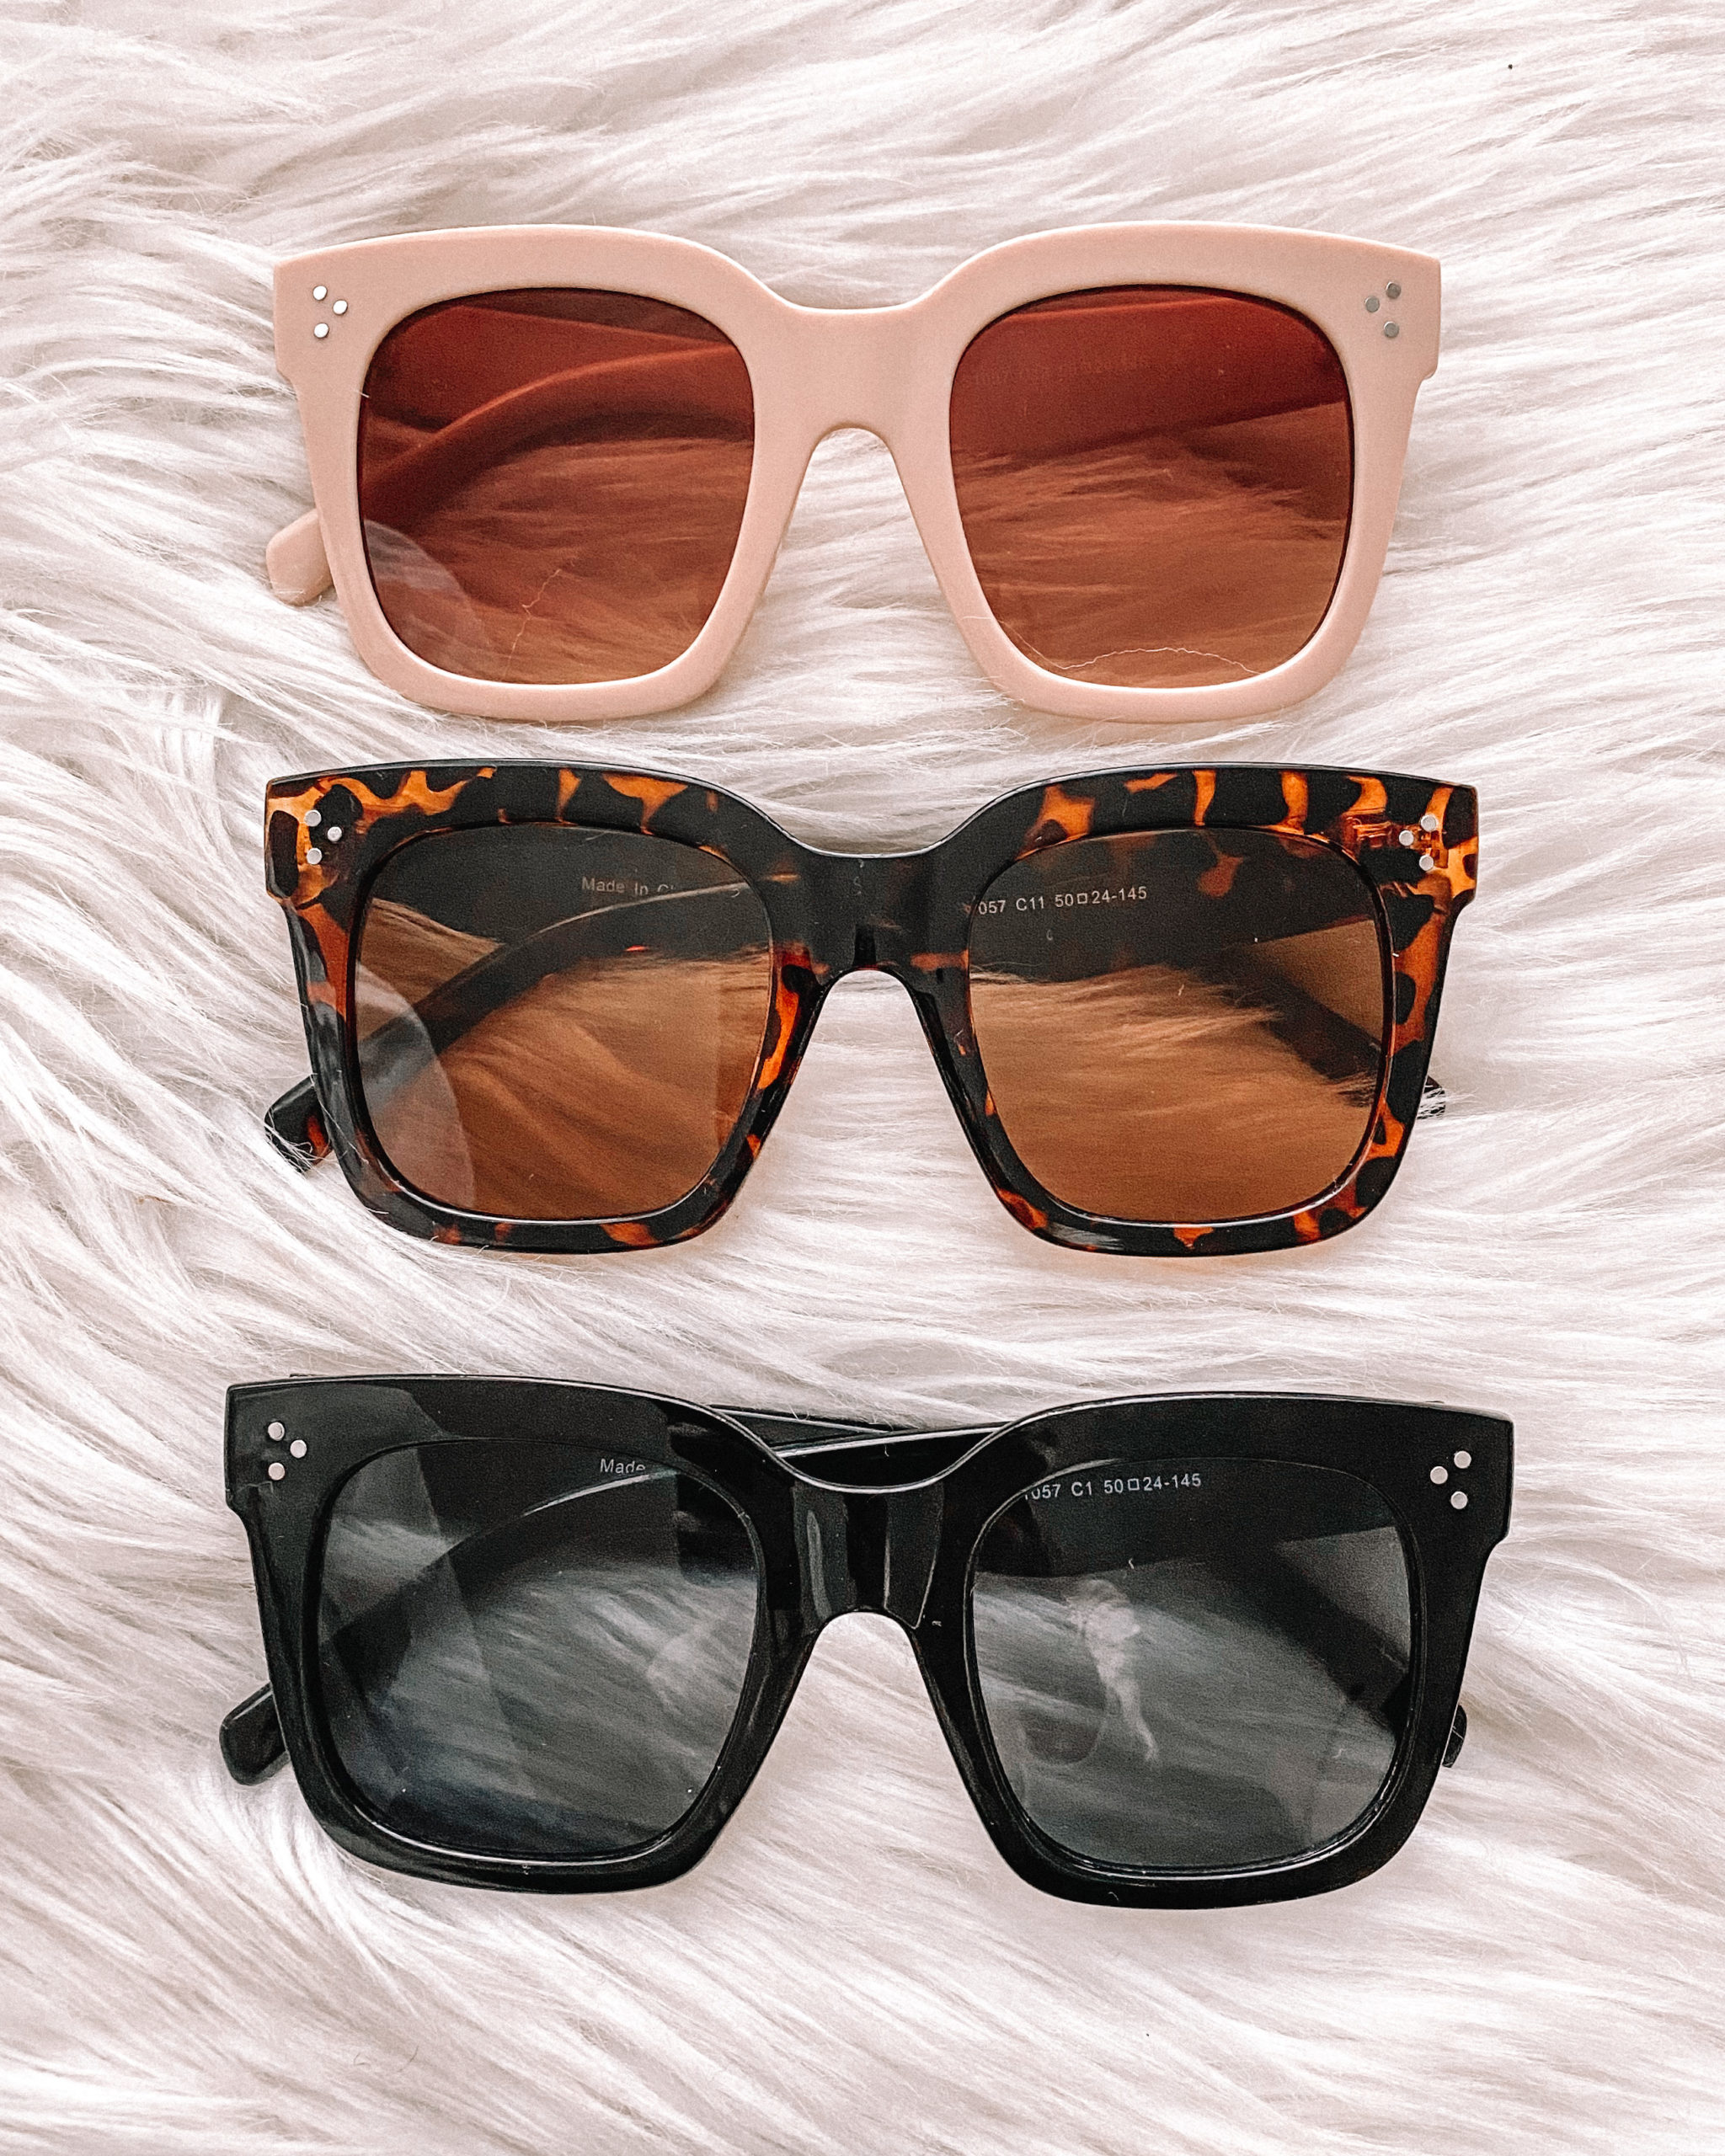 Celine Sunglasses Amazon Dupe